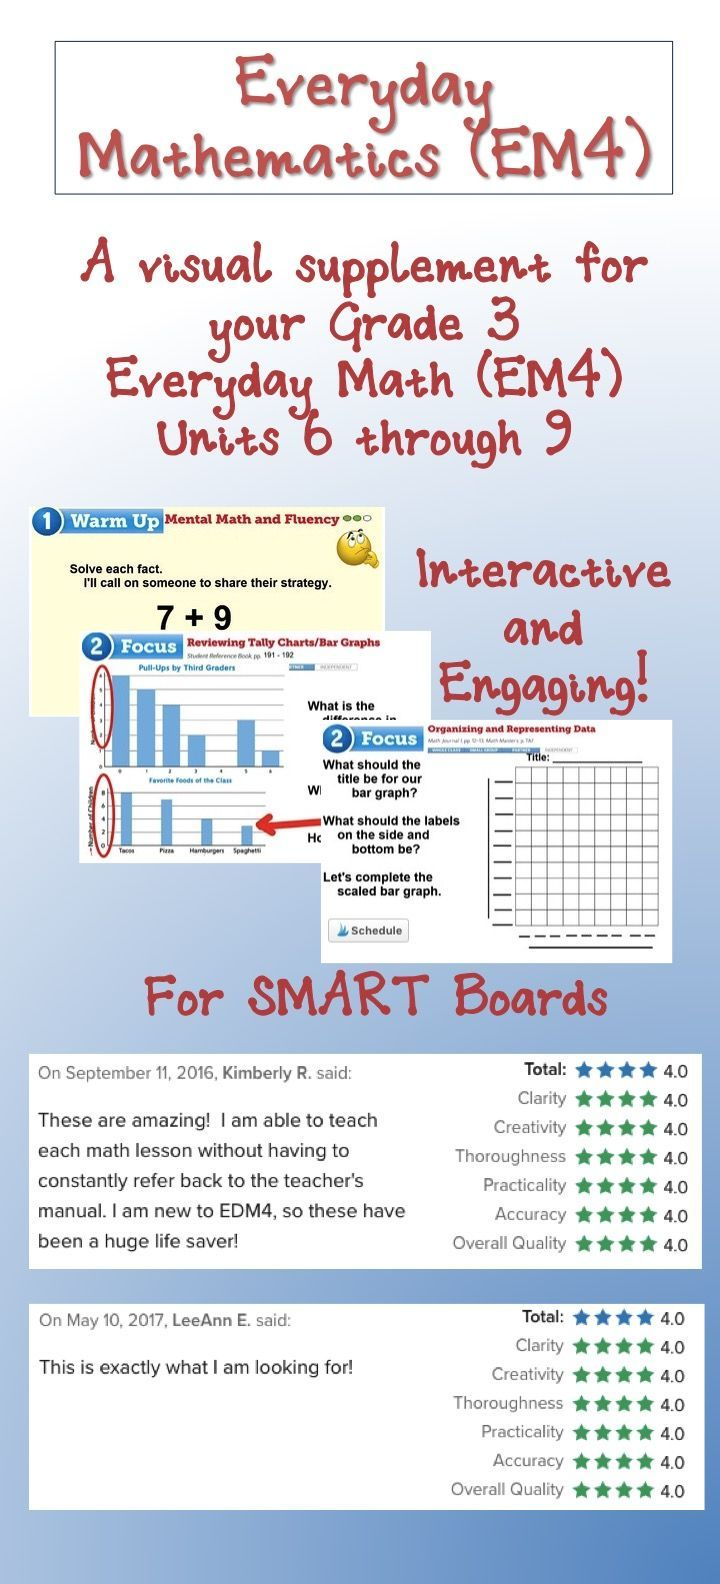 Everyday Mathematics EM4 - 3rd Grade -  SMART Board visual supplement. If you want to put something on your SMART Board that you can be proud of, that will engage the students, and will make your teaching even more fun and easy, then this is the complete